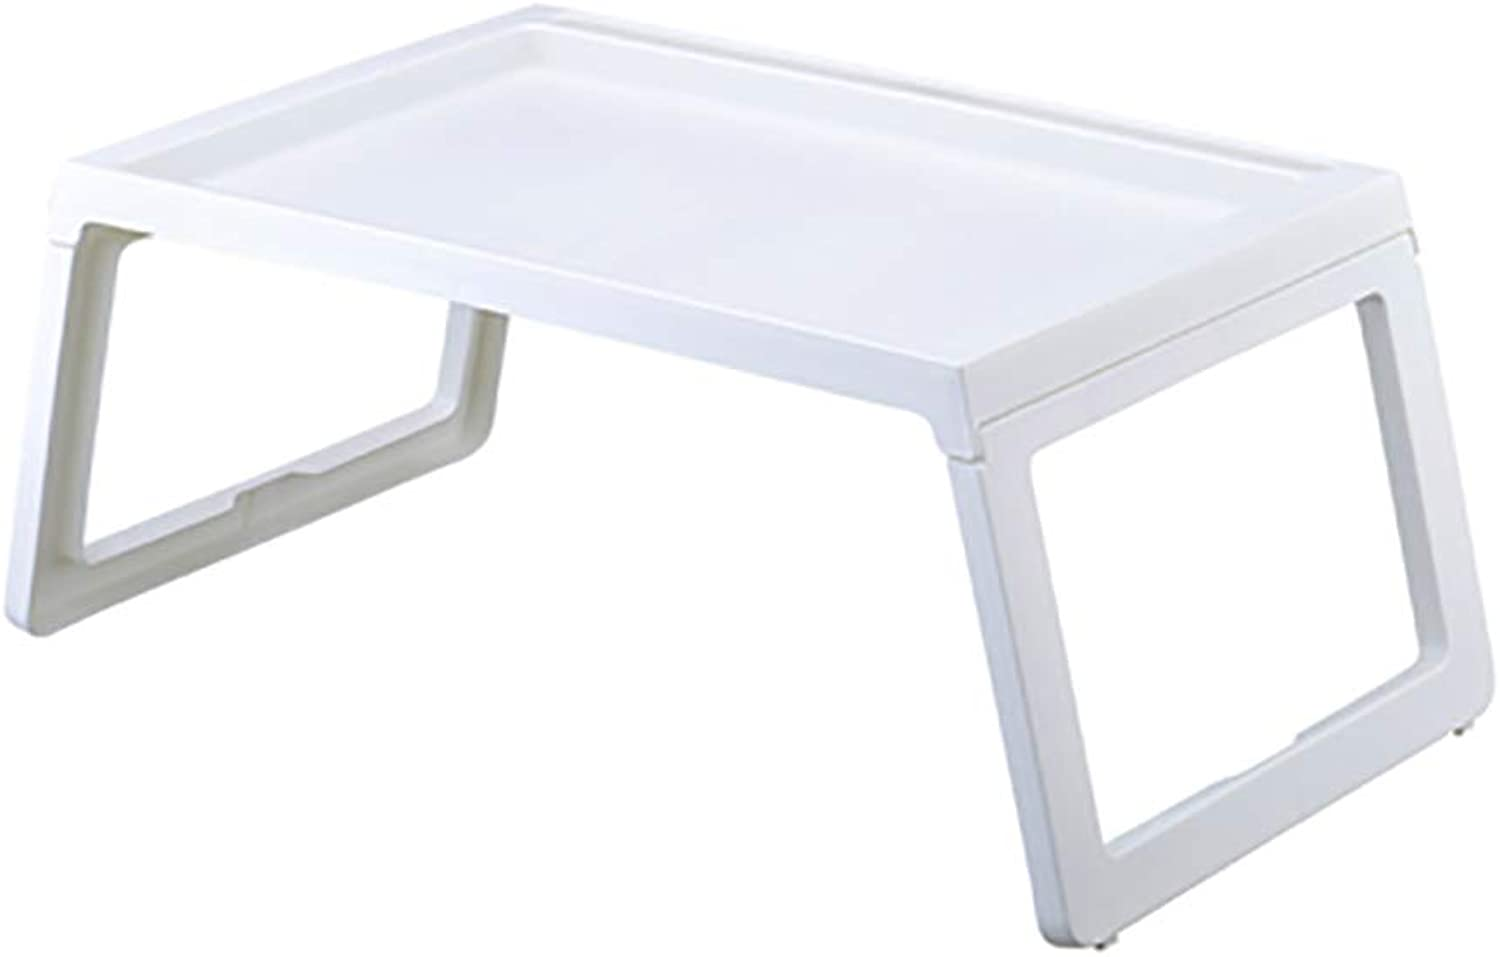 Hai Yan Portable Folding Table Folding Table - Bedroom Folding Computer Table Plastic Light Writing Desk Student Dormitory Notebook Table Bed with Lazy Table - Size  56x36x26cm (color   G)